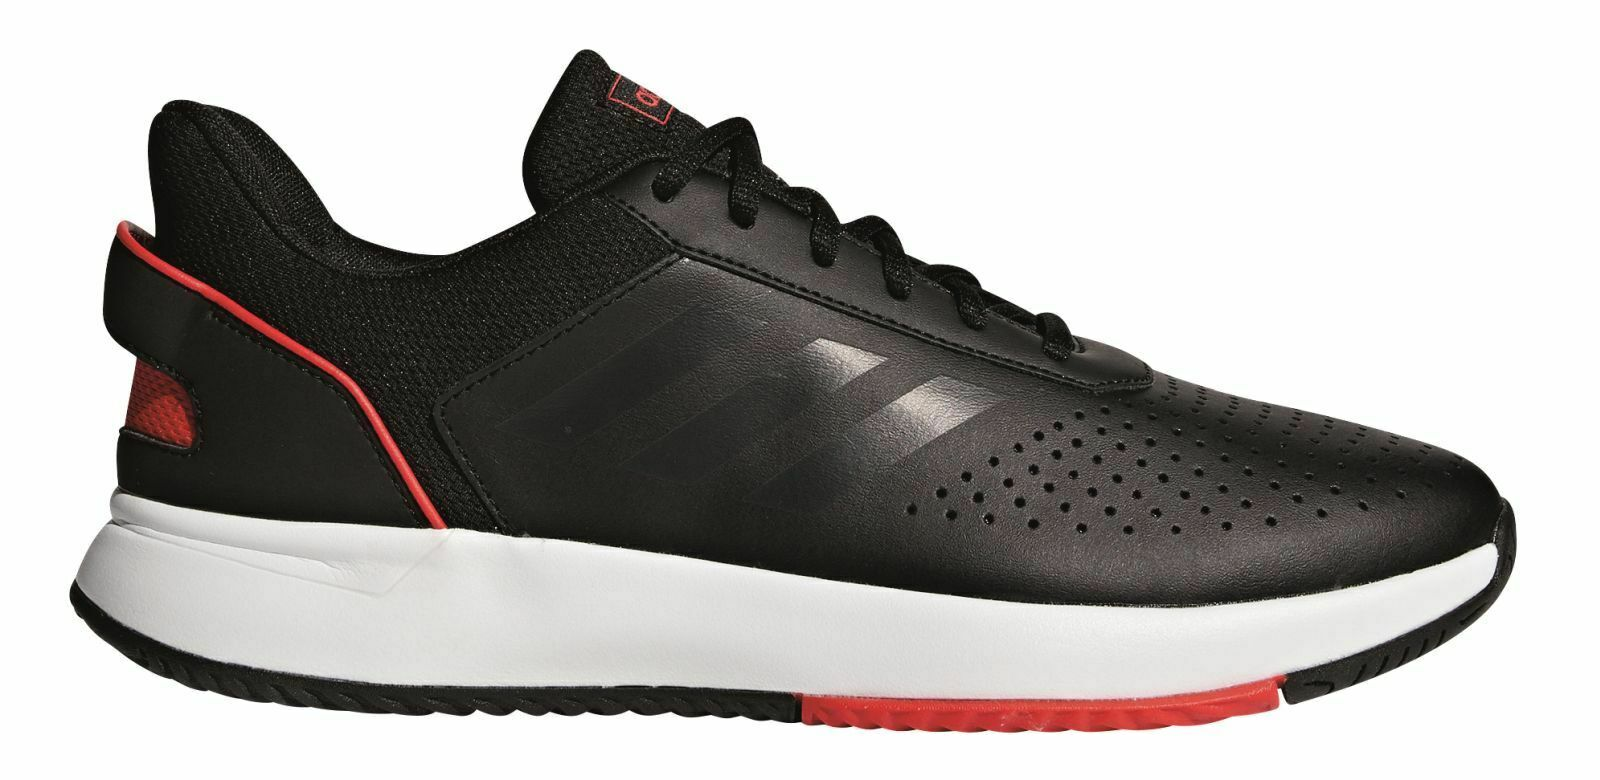 Adidas performance  señores tenis zapato tennischuh courtsmash negro  exclusivo